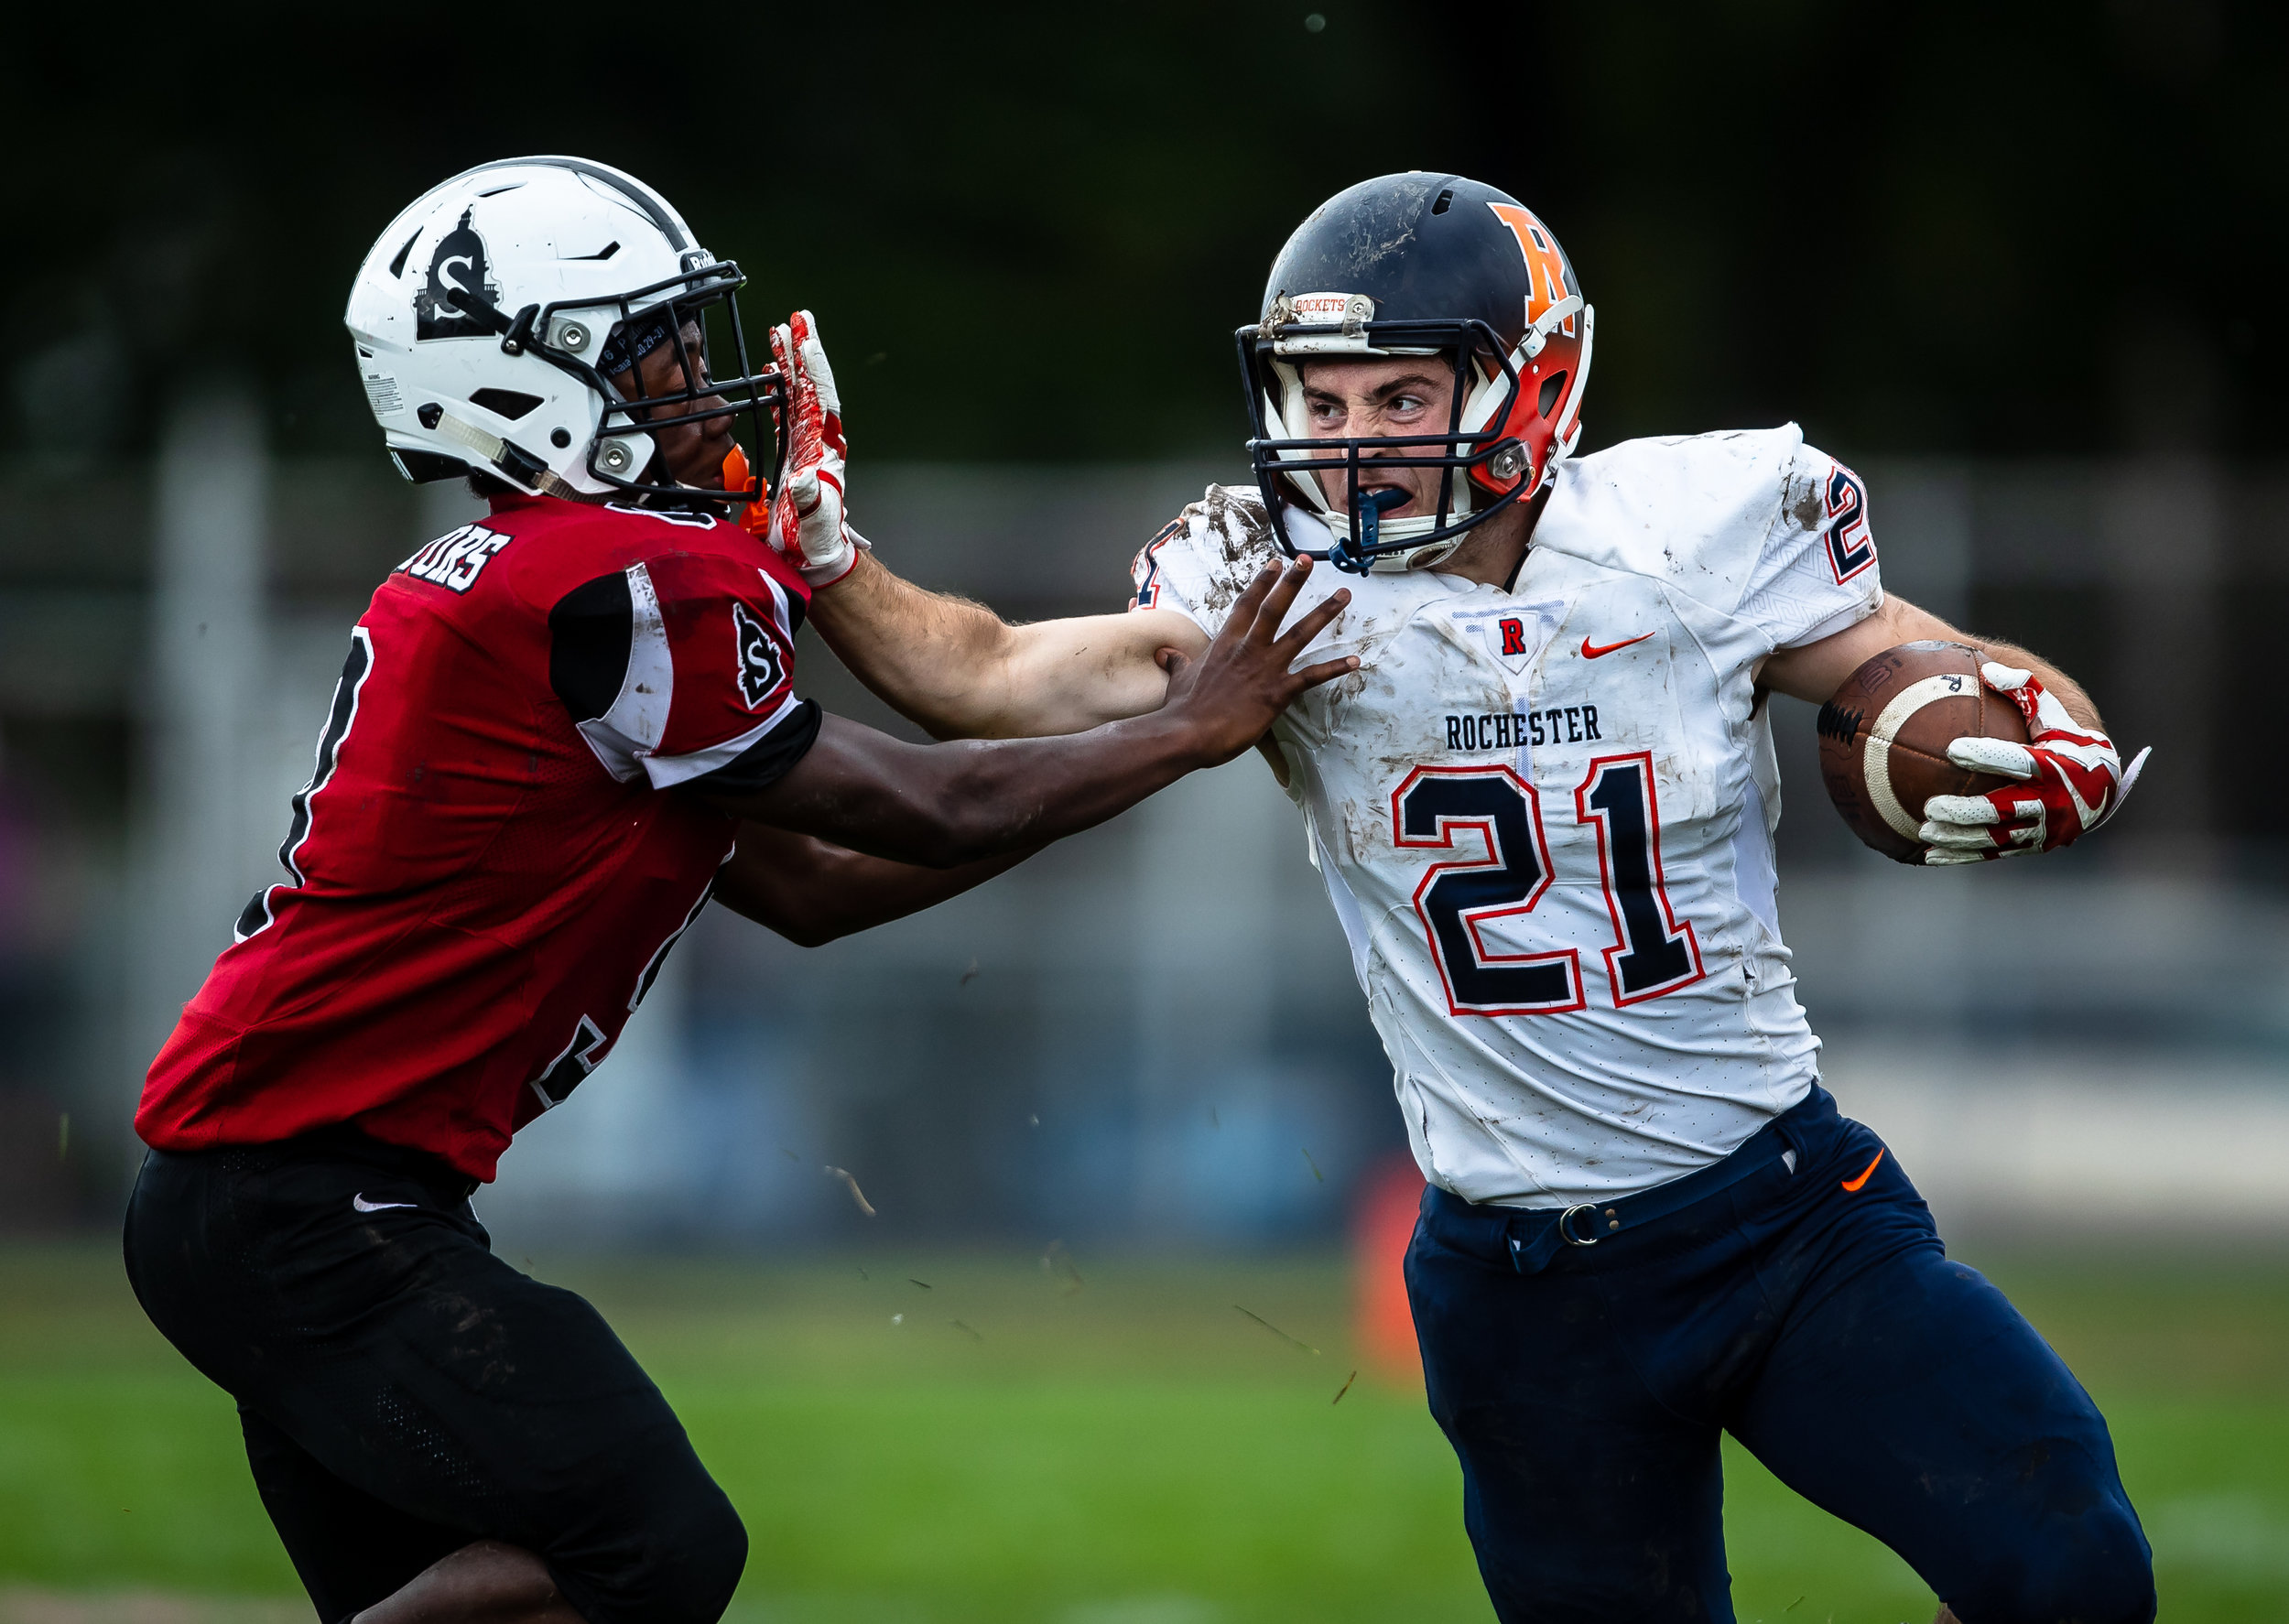 Rochester's David Yoggerst (21) puts a stiff arm on Springfield's Jeffery Elms (9) on a rush in the first half at Memorial Stadium, Saturday, Oct. 6, 2018, in Springfield, Ill. [Justin L. Fowler/The State Journal-Register]